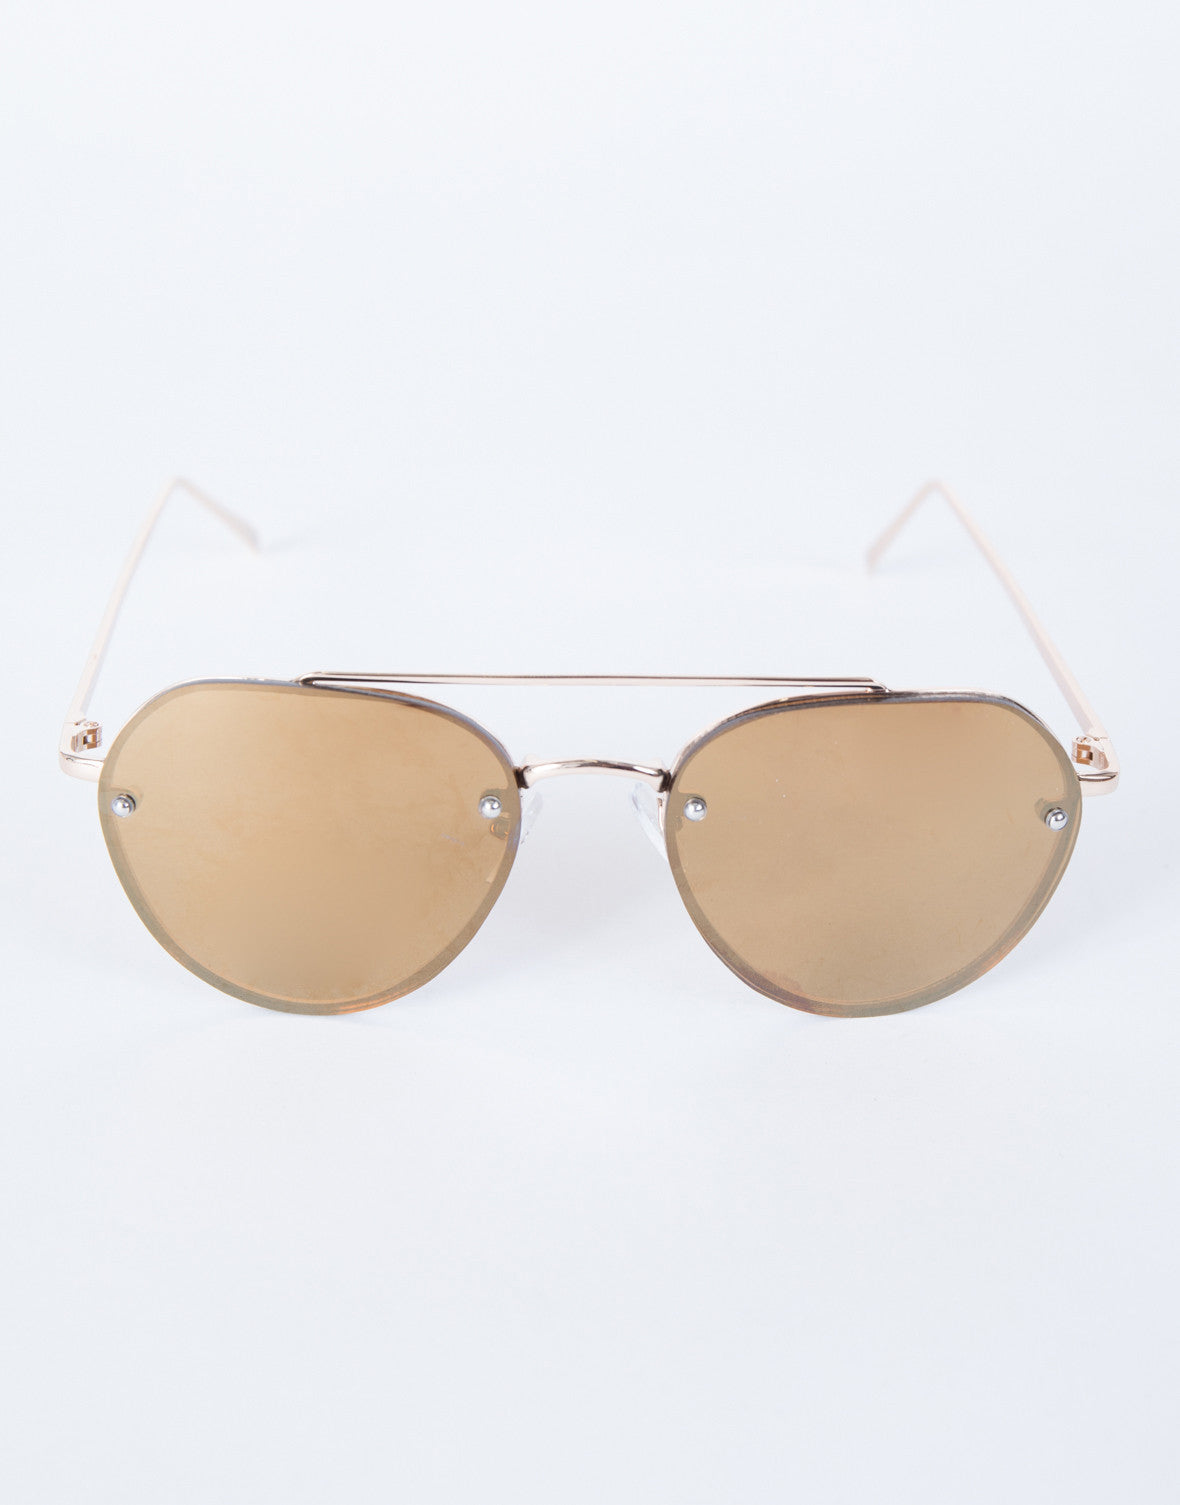 Brown The Cleo Sunnies - Top View